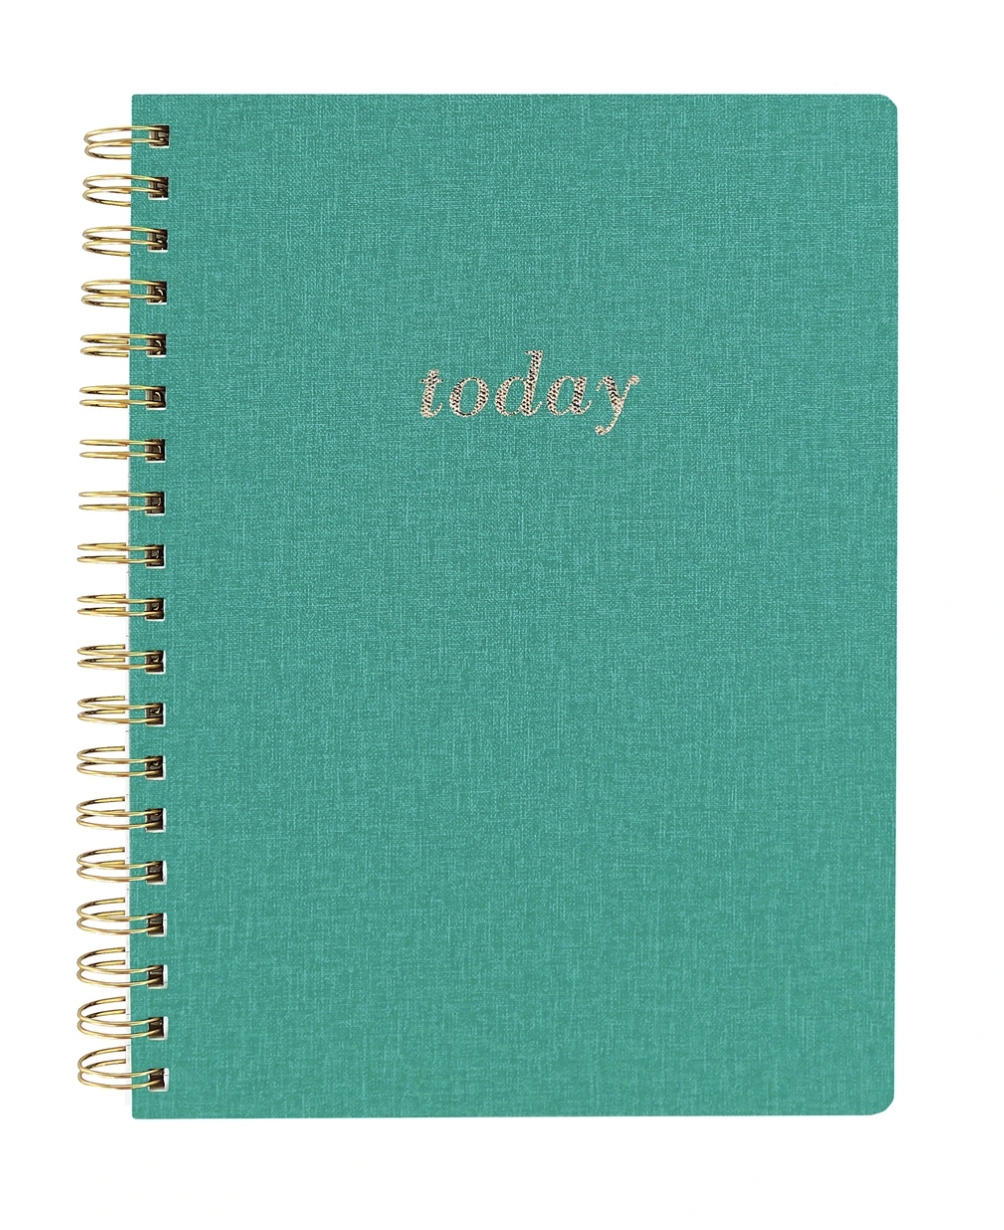 Green Today Spiral Vegan Leather Journal